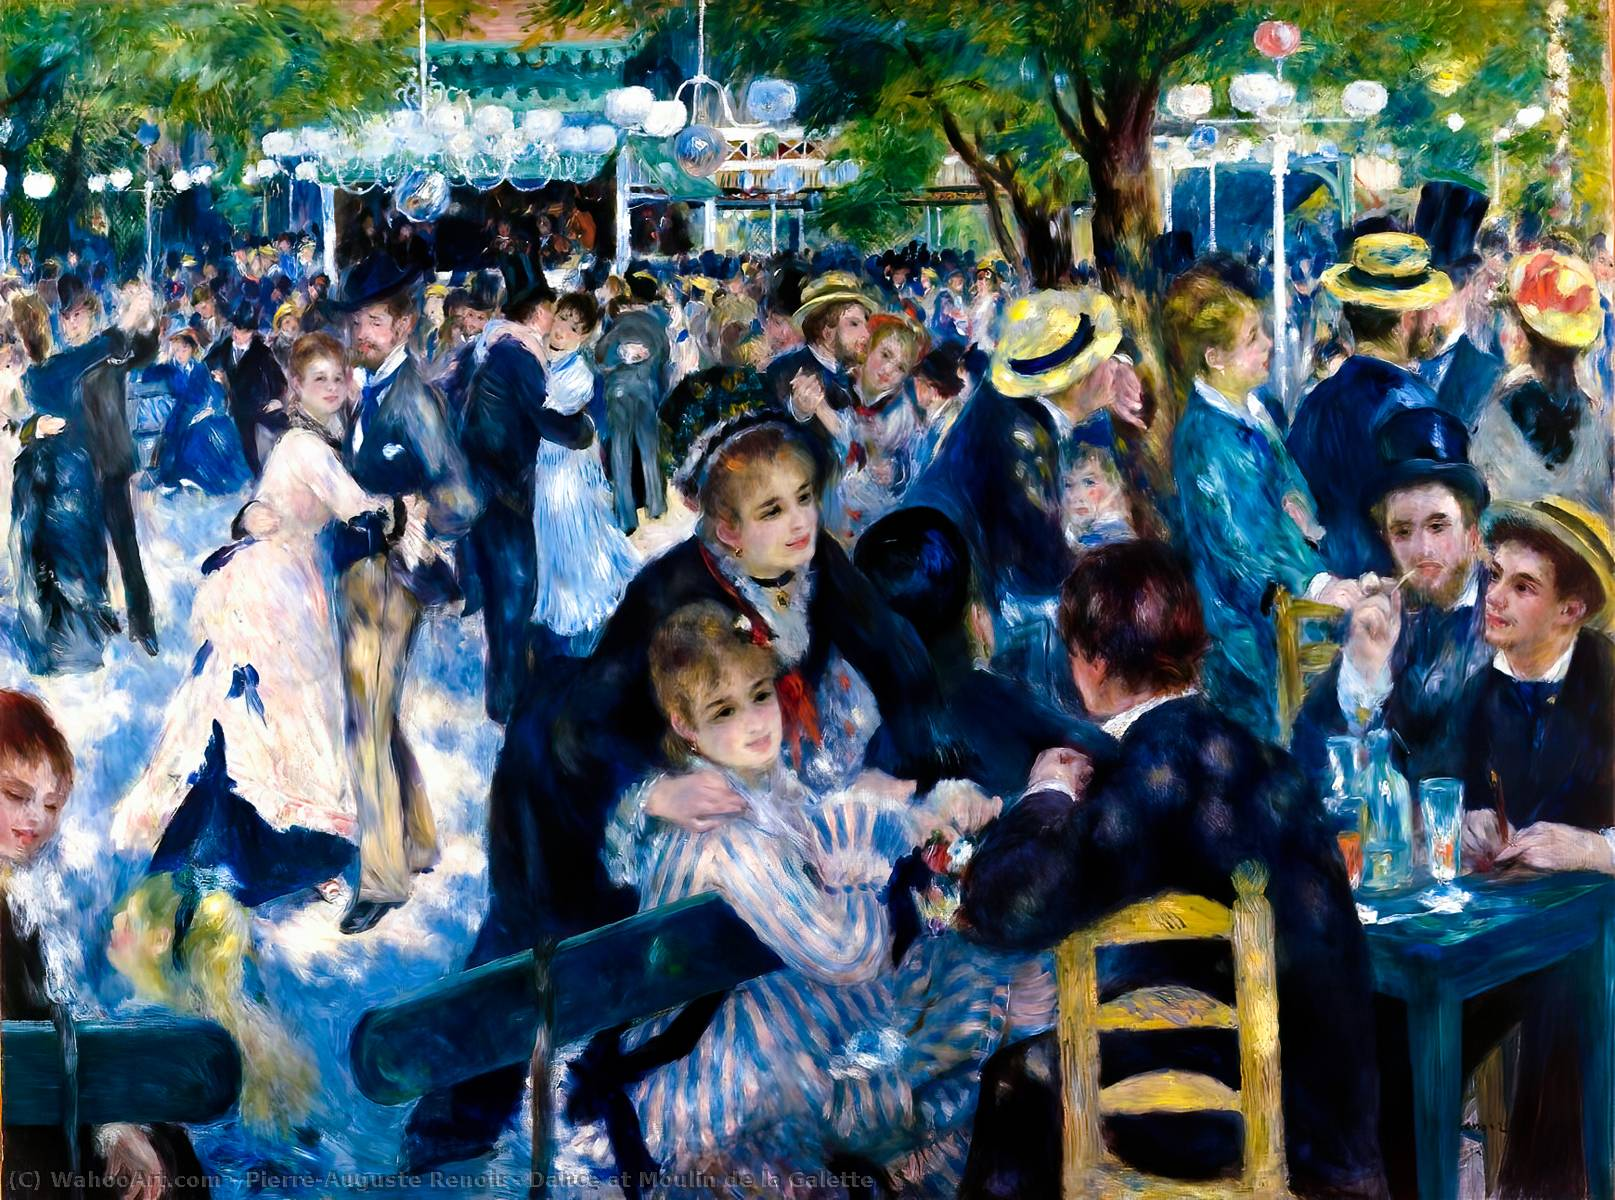 Dance at Moulin de la Galette, 1876 by Pierre-Auguste Renoir (1841-1919, France) | Paintings Reproductions Pierre-Auguste Renoir | WahooArt.com